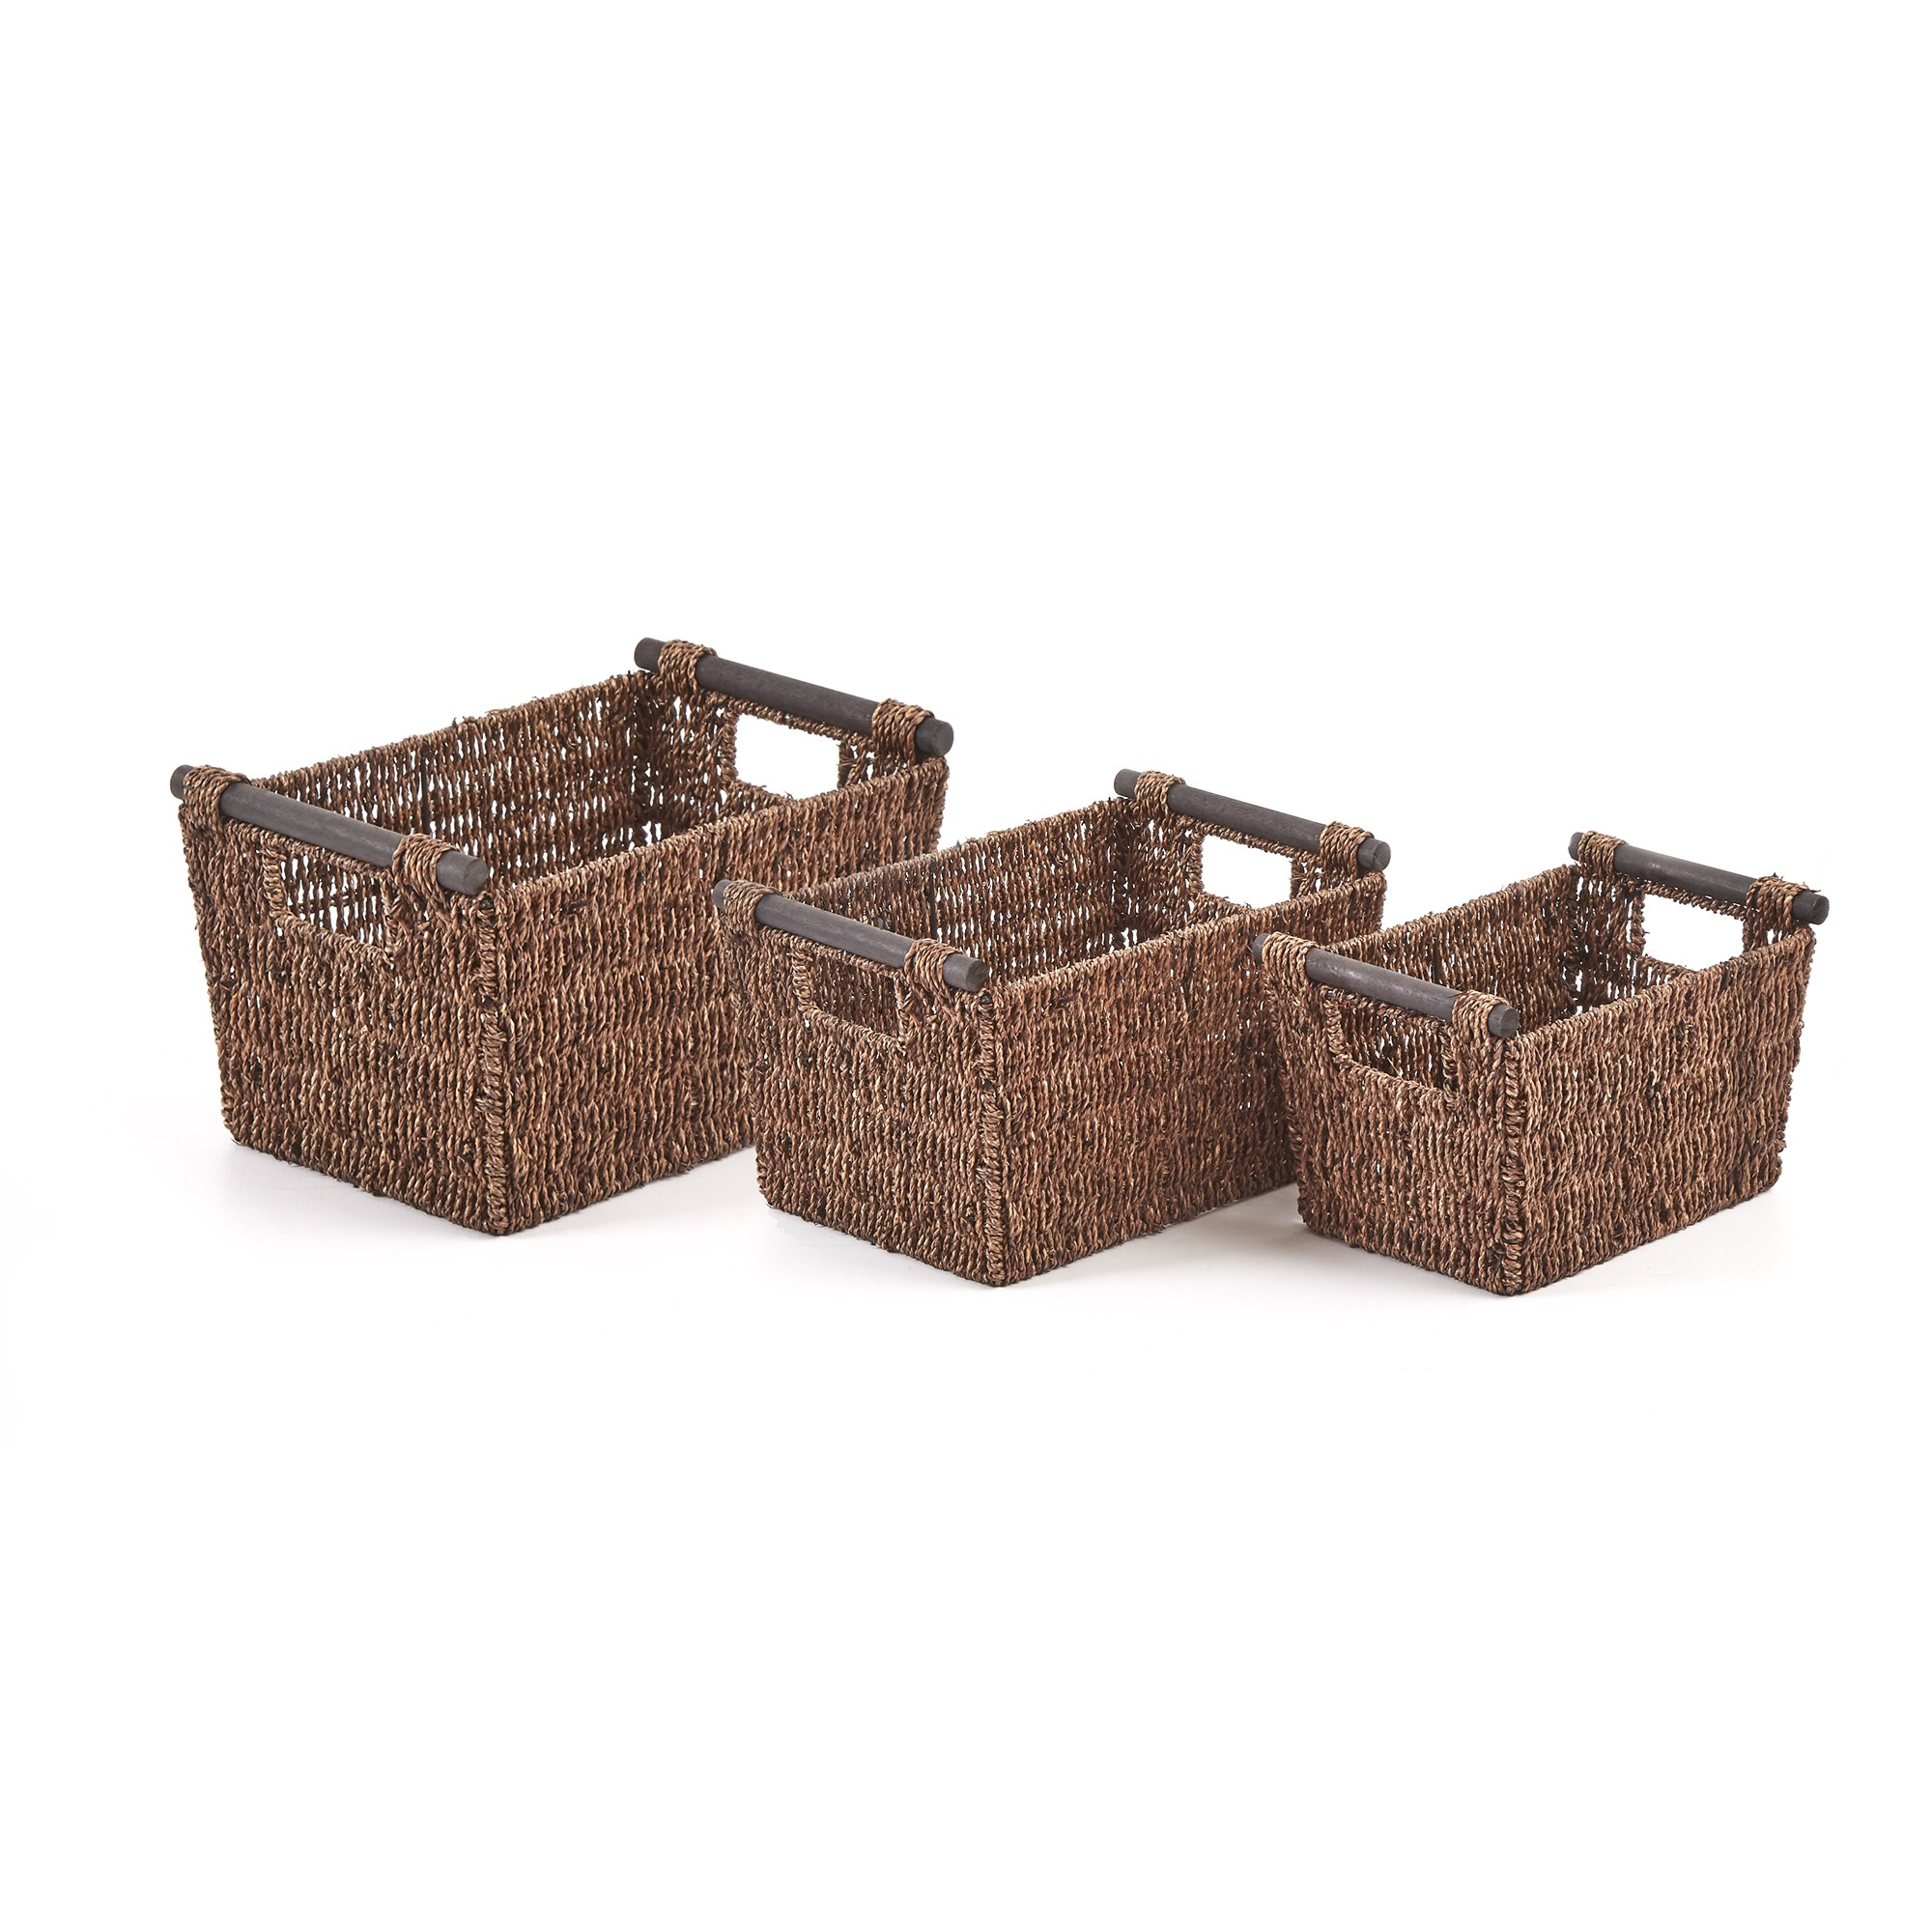 Natural Baskets (Pack of 3)